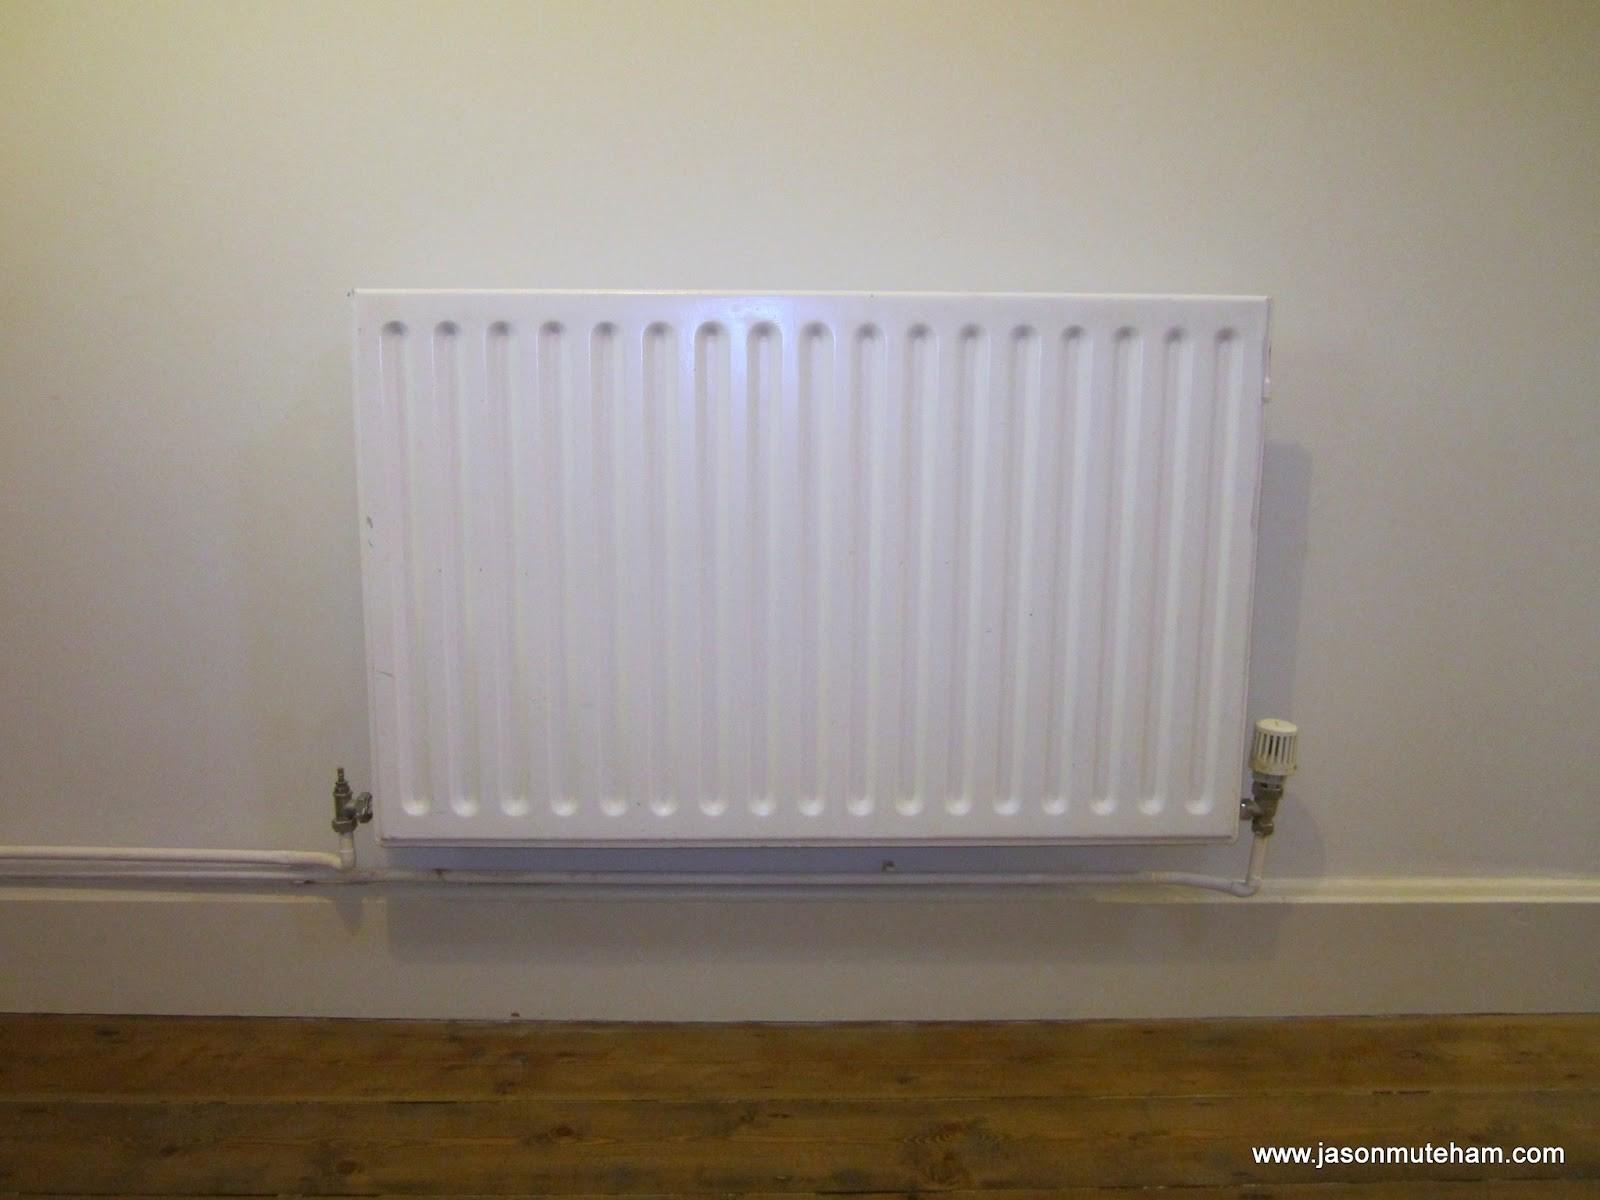 Jason Muteham Furniture Designer Maker Can Radiator